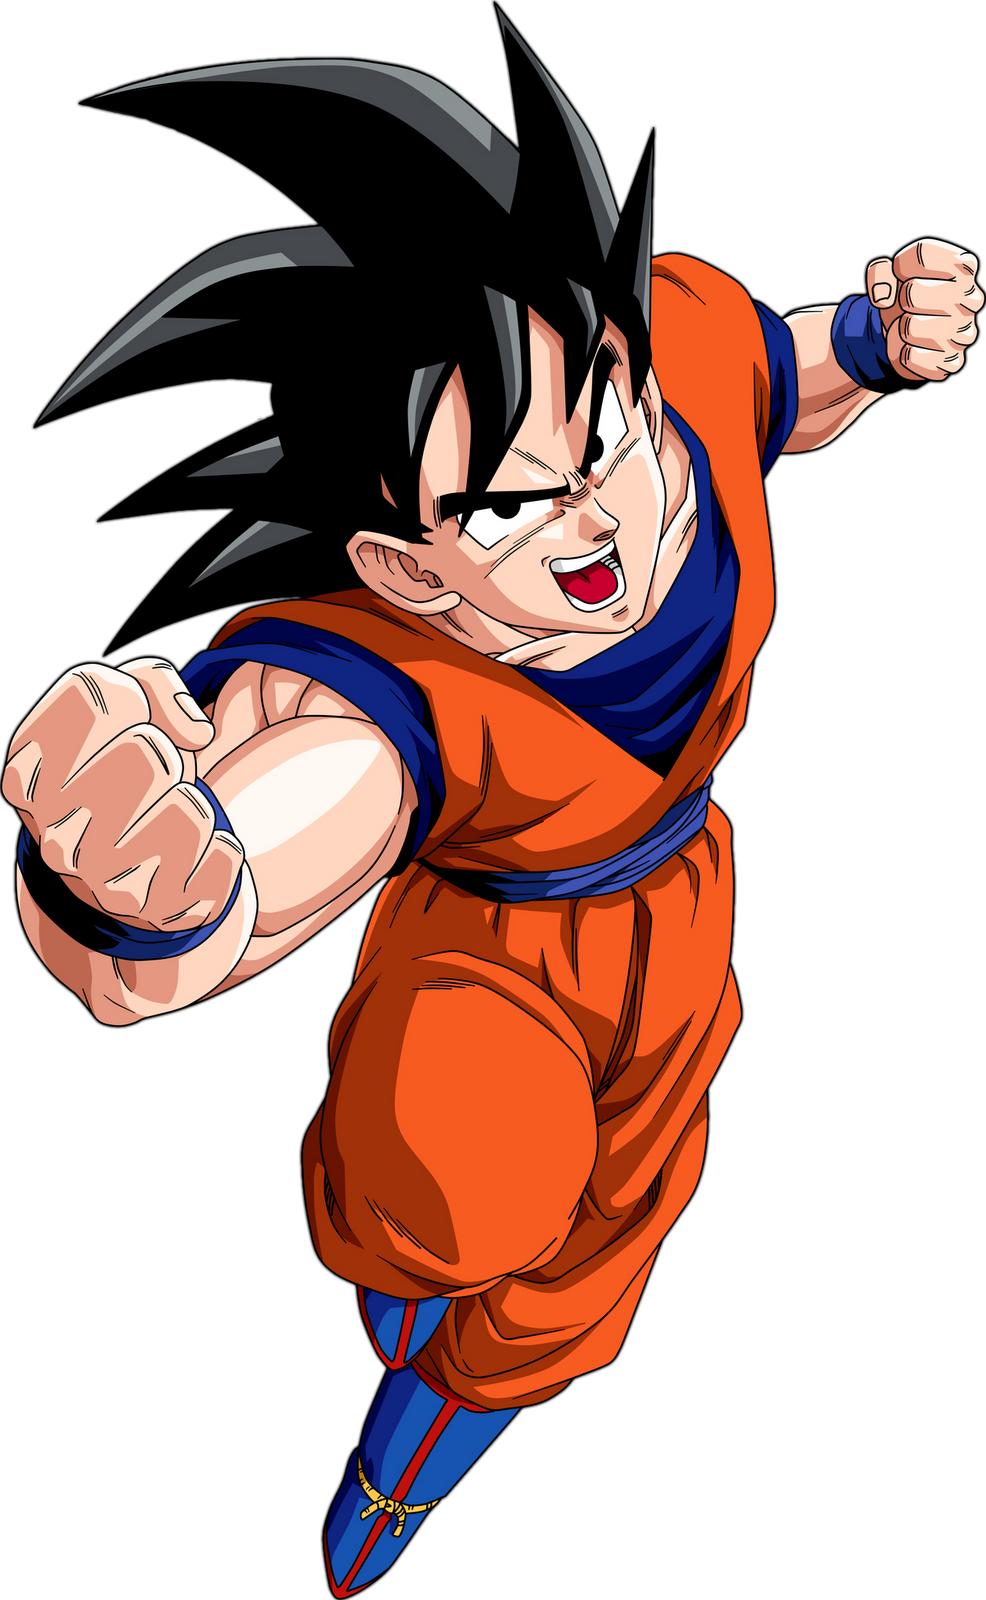 http://img3.wikia.nocookie.net/__cb20140301190134/dragonballfanon/es/images/9/9c/Goku_definitivo.png